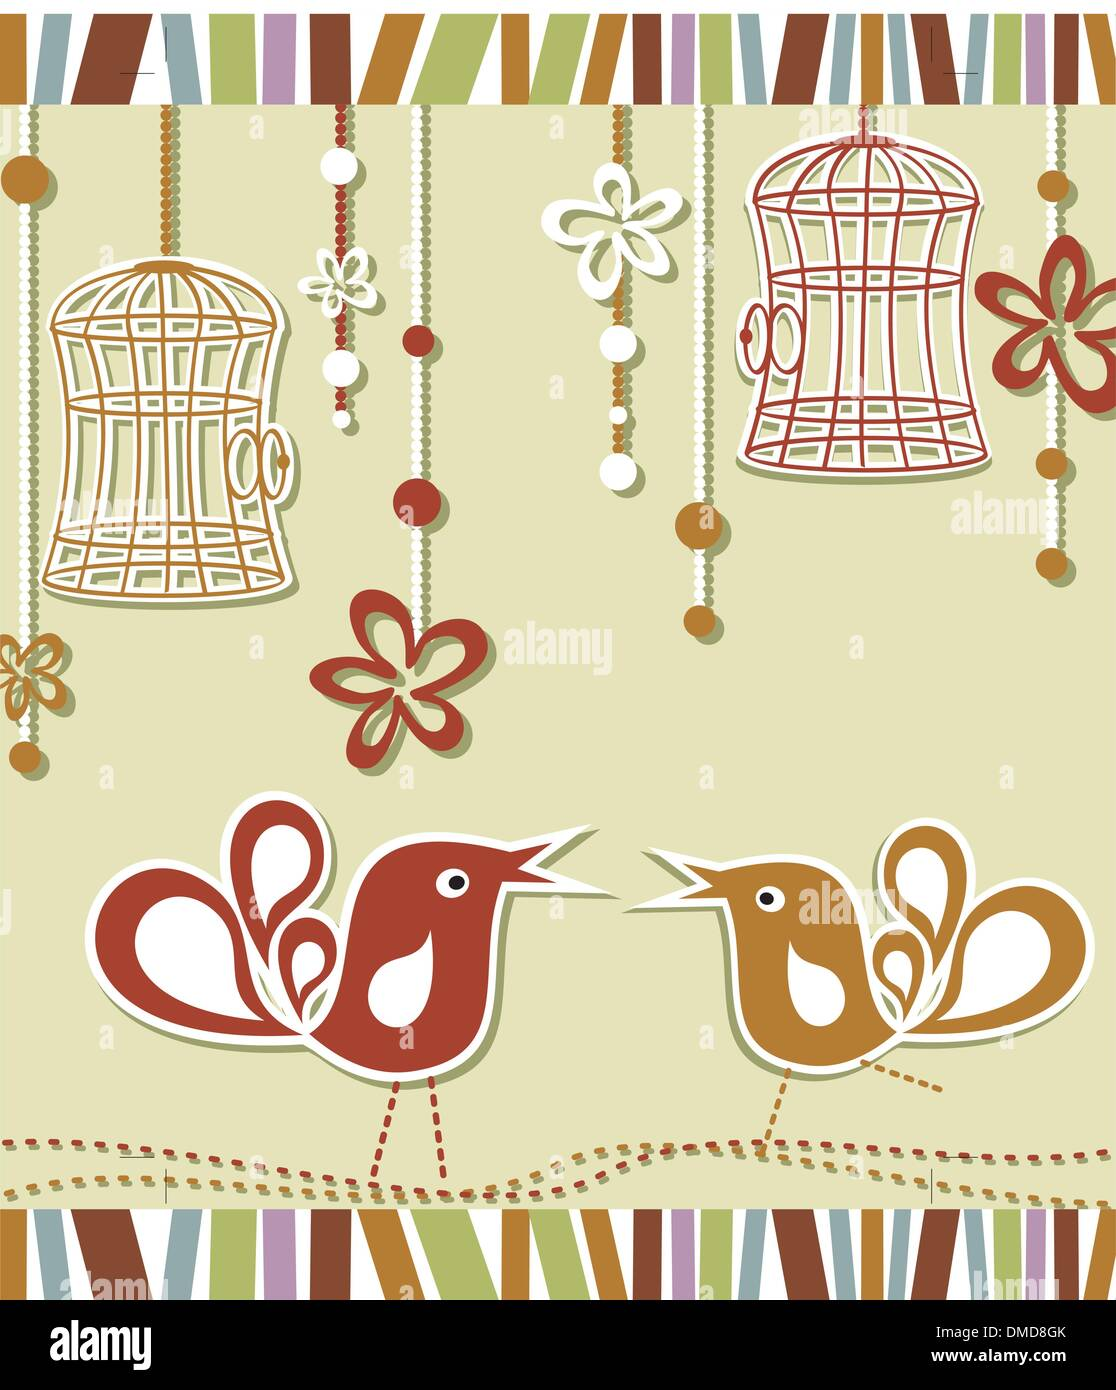 Bird Cage Stock Vector Images - Alamy